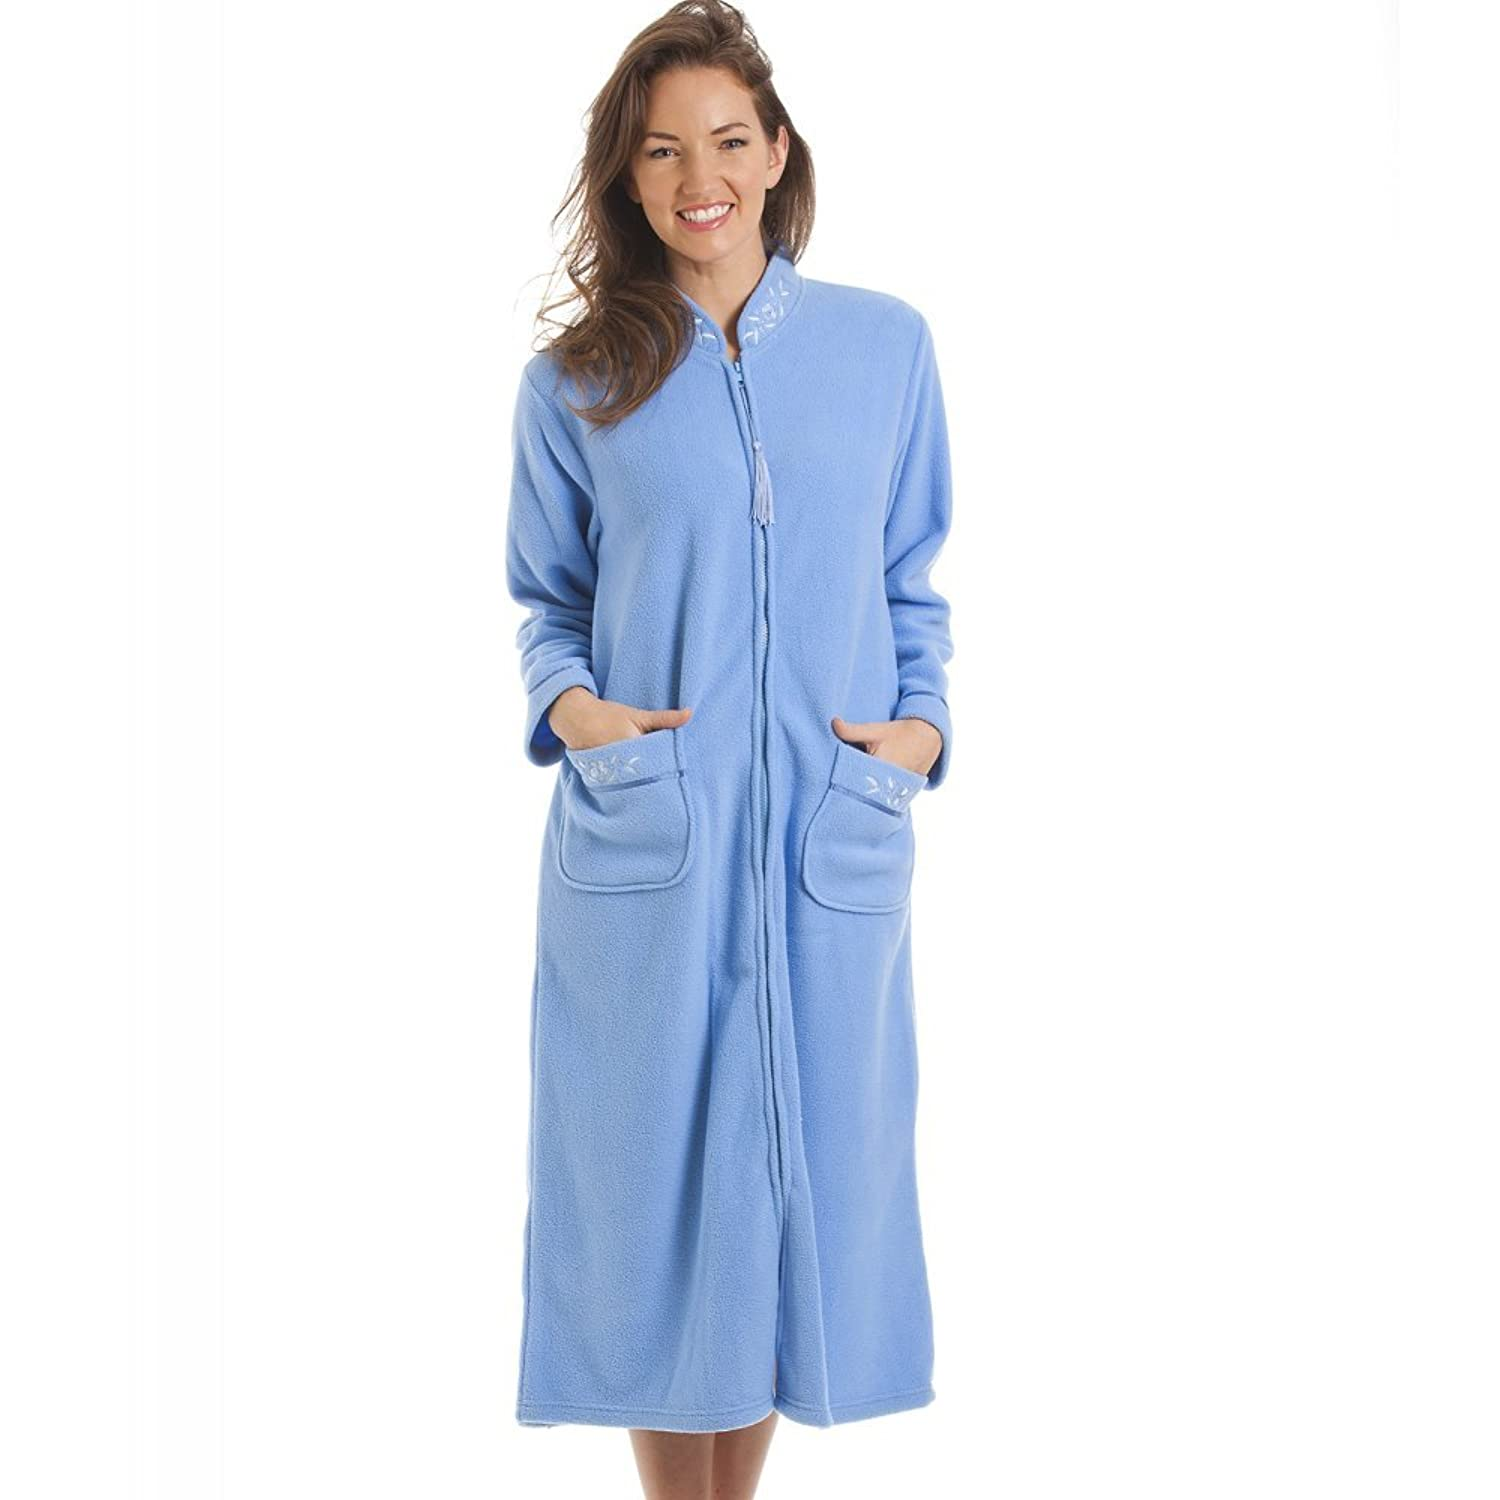 Camille Womens Ladies Luxury Blue Zip Up Housecoat Bath Robe 6/8 ...